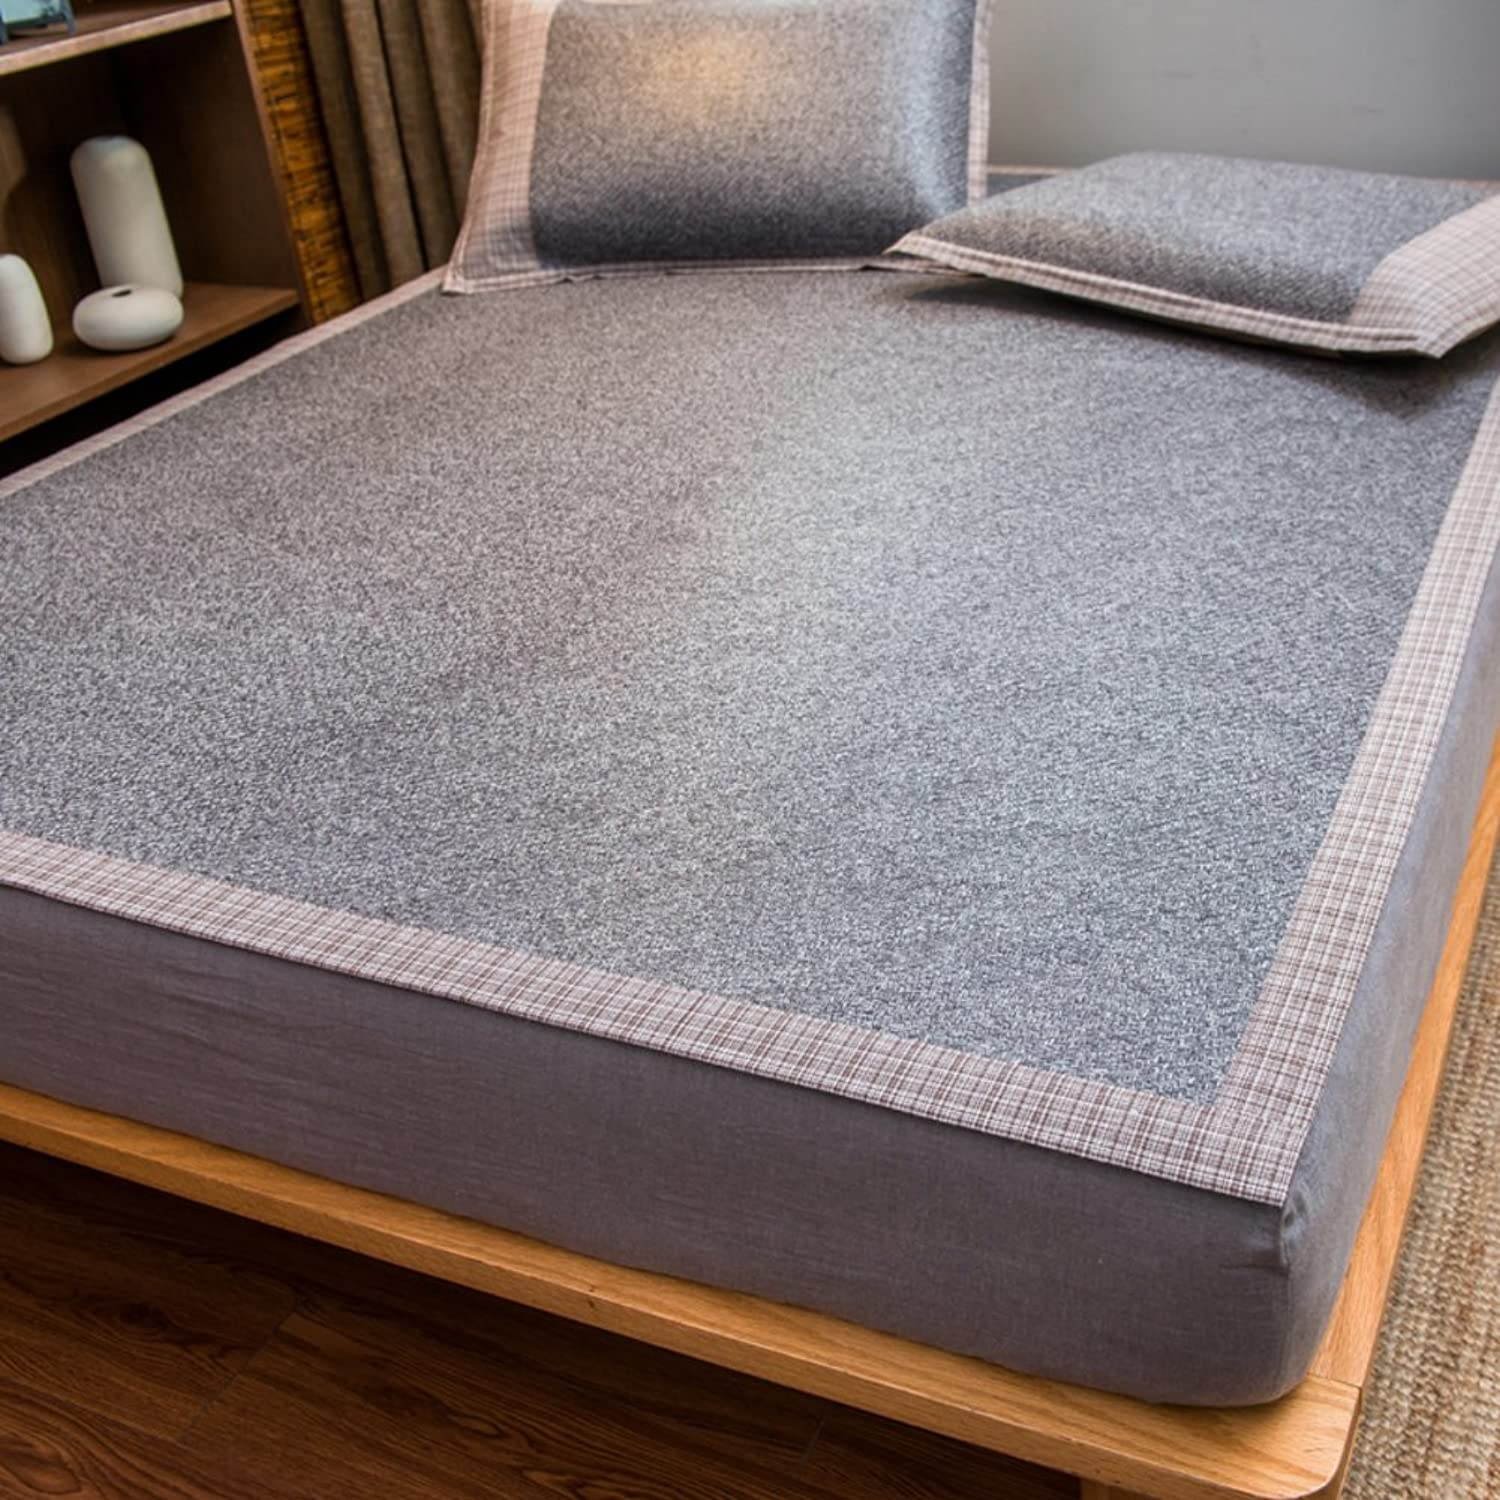 Japanese Rattan mat,Double Collapsible ice Straw mat Collapsible Breathable Summer mat Cool pad -A 90x200cm(35x79inch)